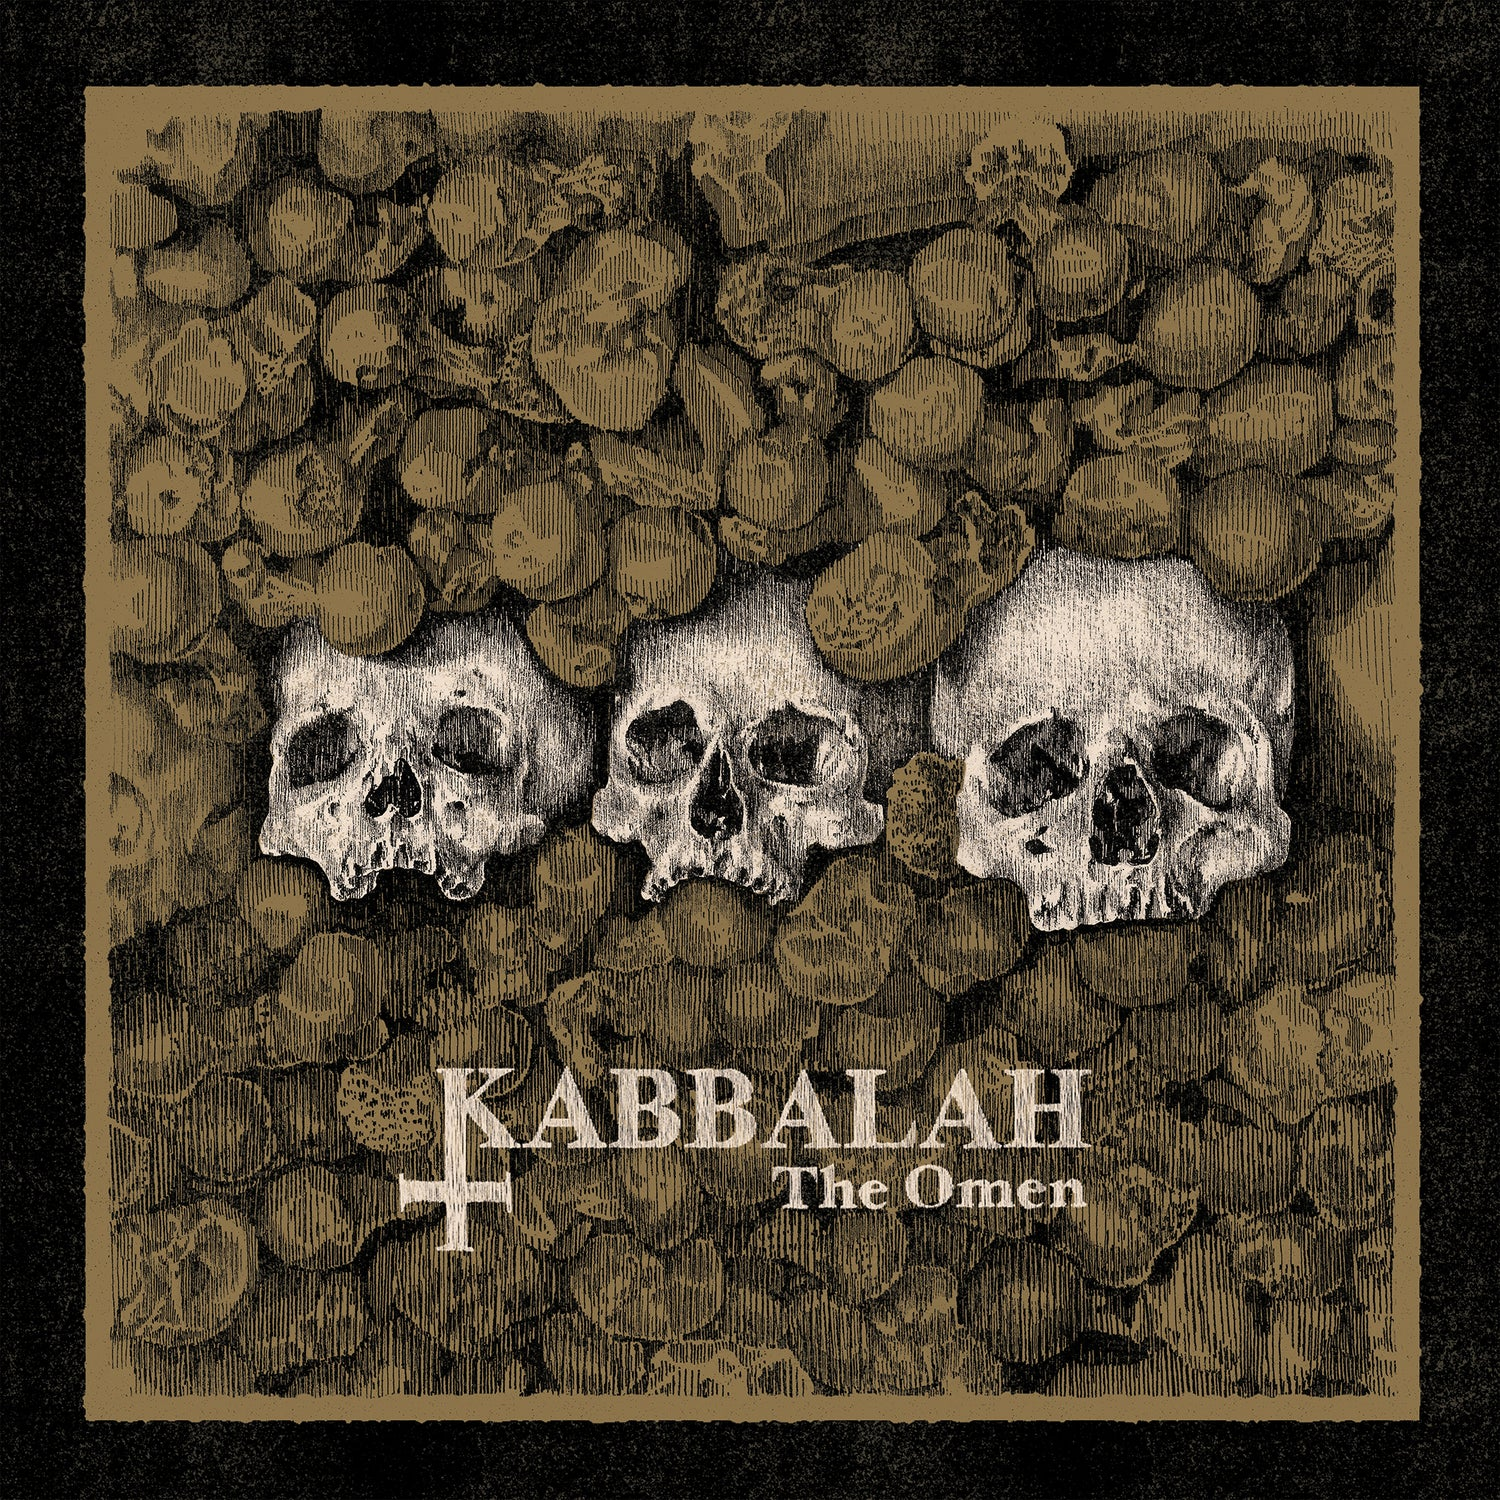 Image of Kabbalah - The Omen Limited Digipak CD